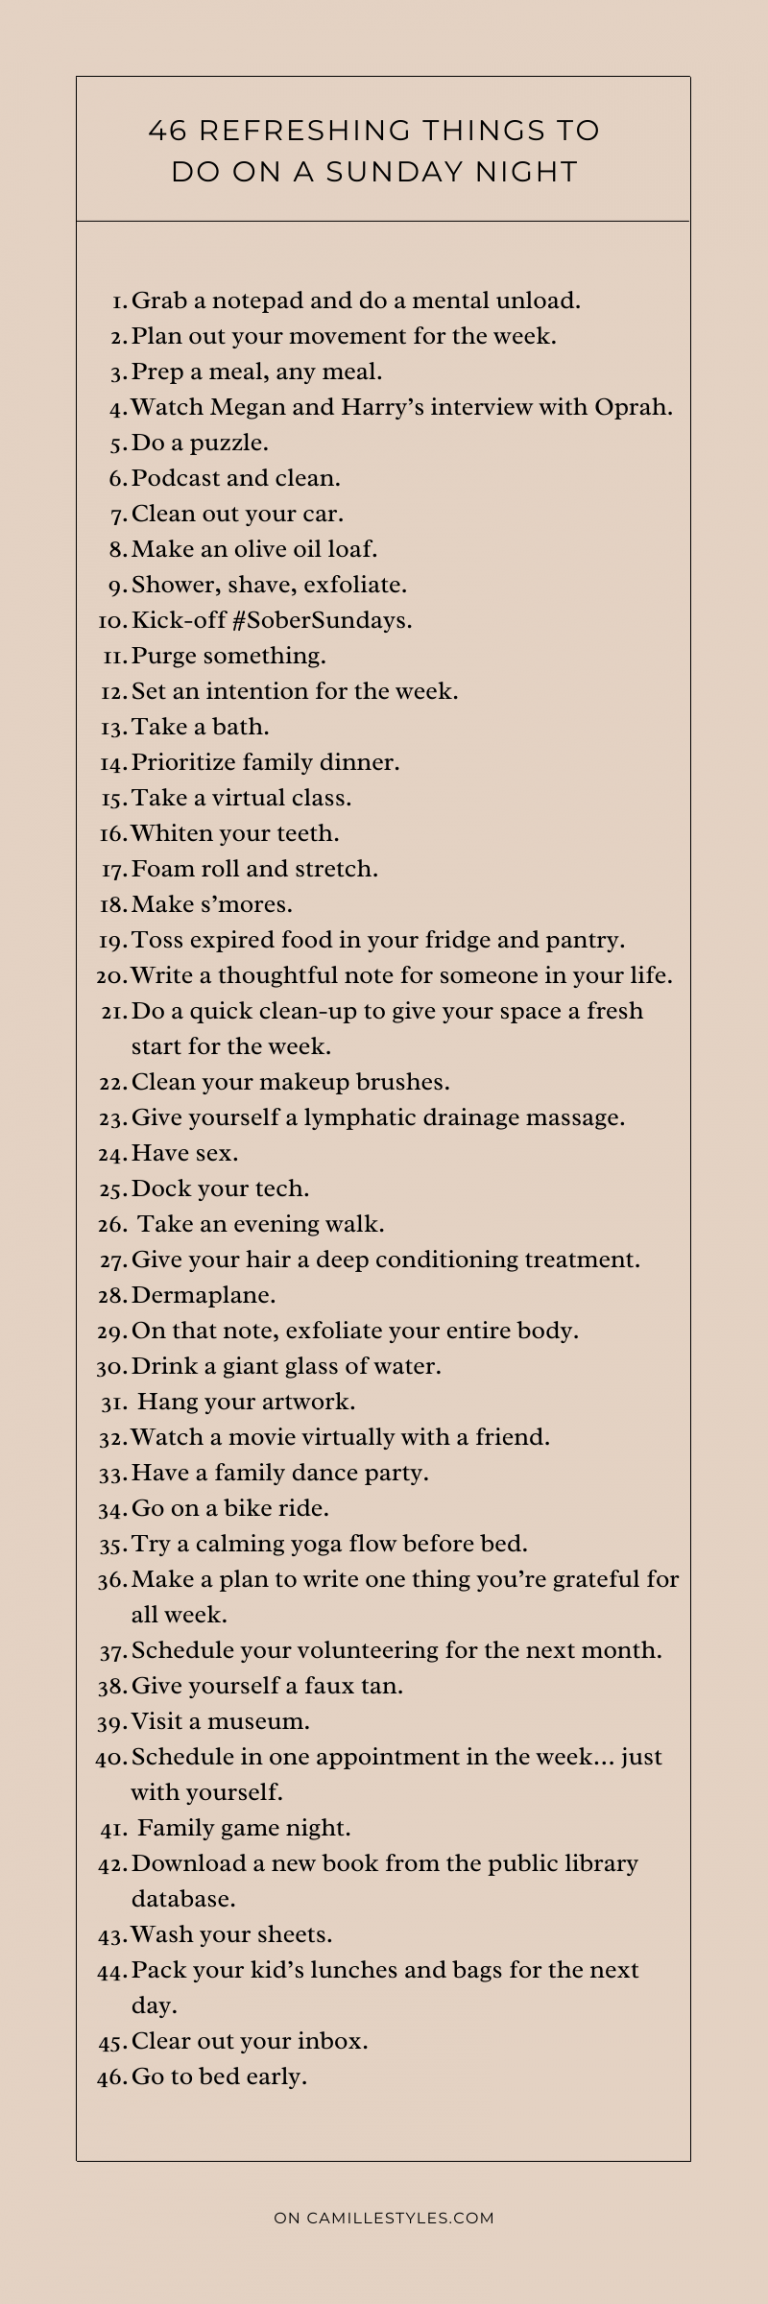 Pinterest_ 46 things to do on a sunday